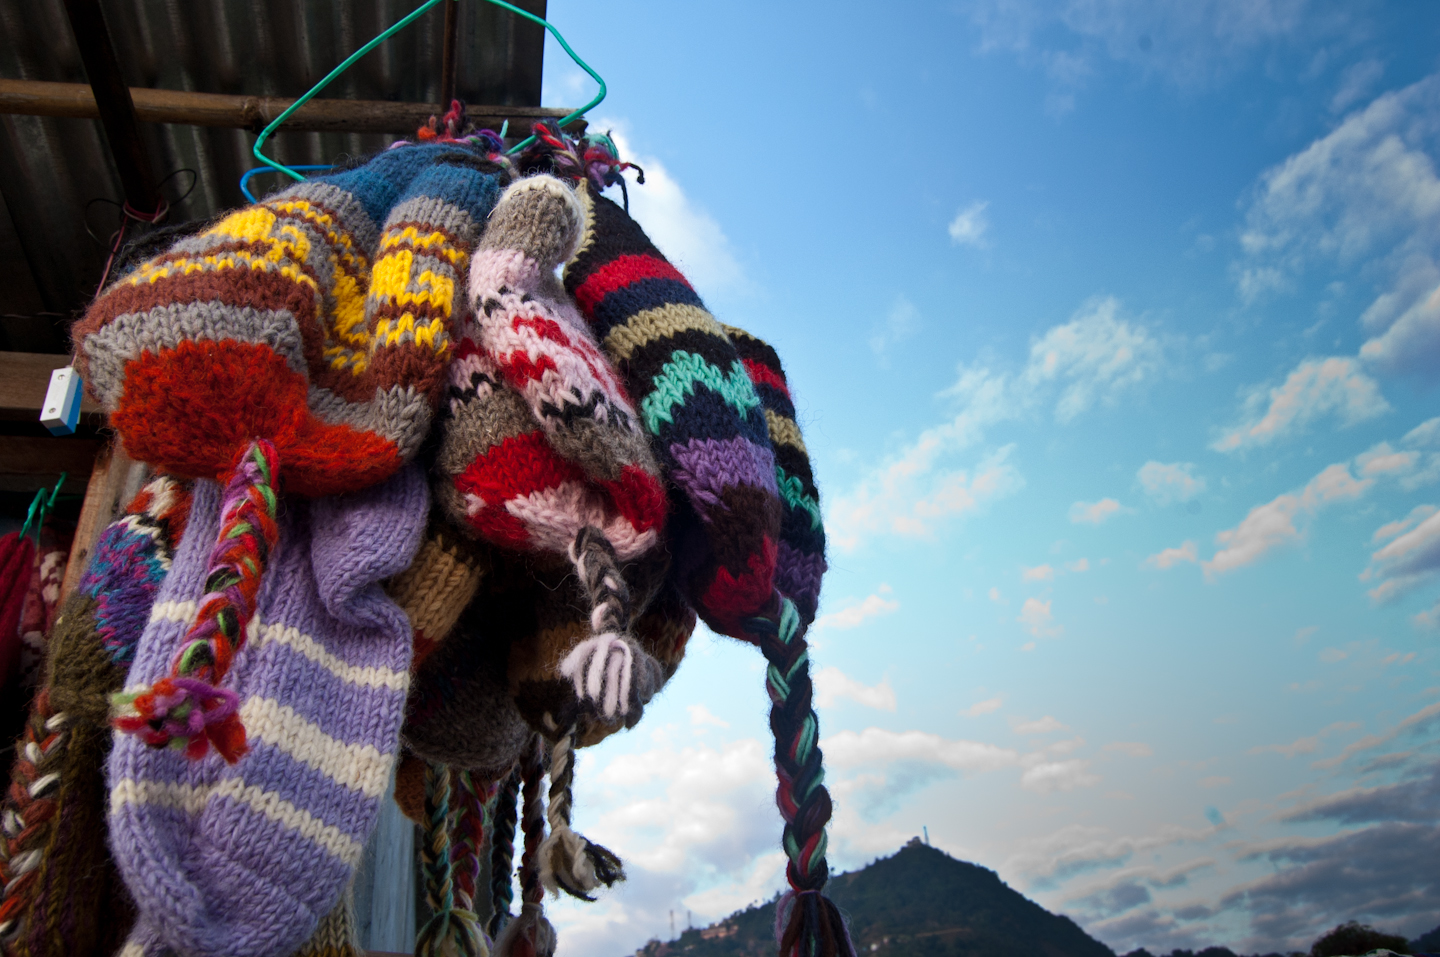 Photo: I'll Keep You Warm  Handicraft woolen caps hanging in a wayside shop near Sarangkot, Pokhara.  Love to shoot these kinda stuff that are mostly seen as commonplace, yet they can surprise you if you give them some time and thought. For #WhateverWednesday curated by +Cicely Robin Laing .